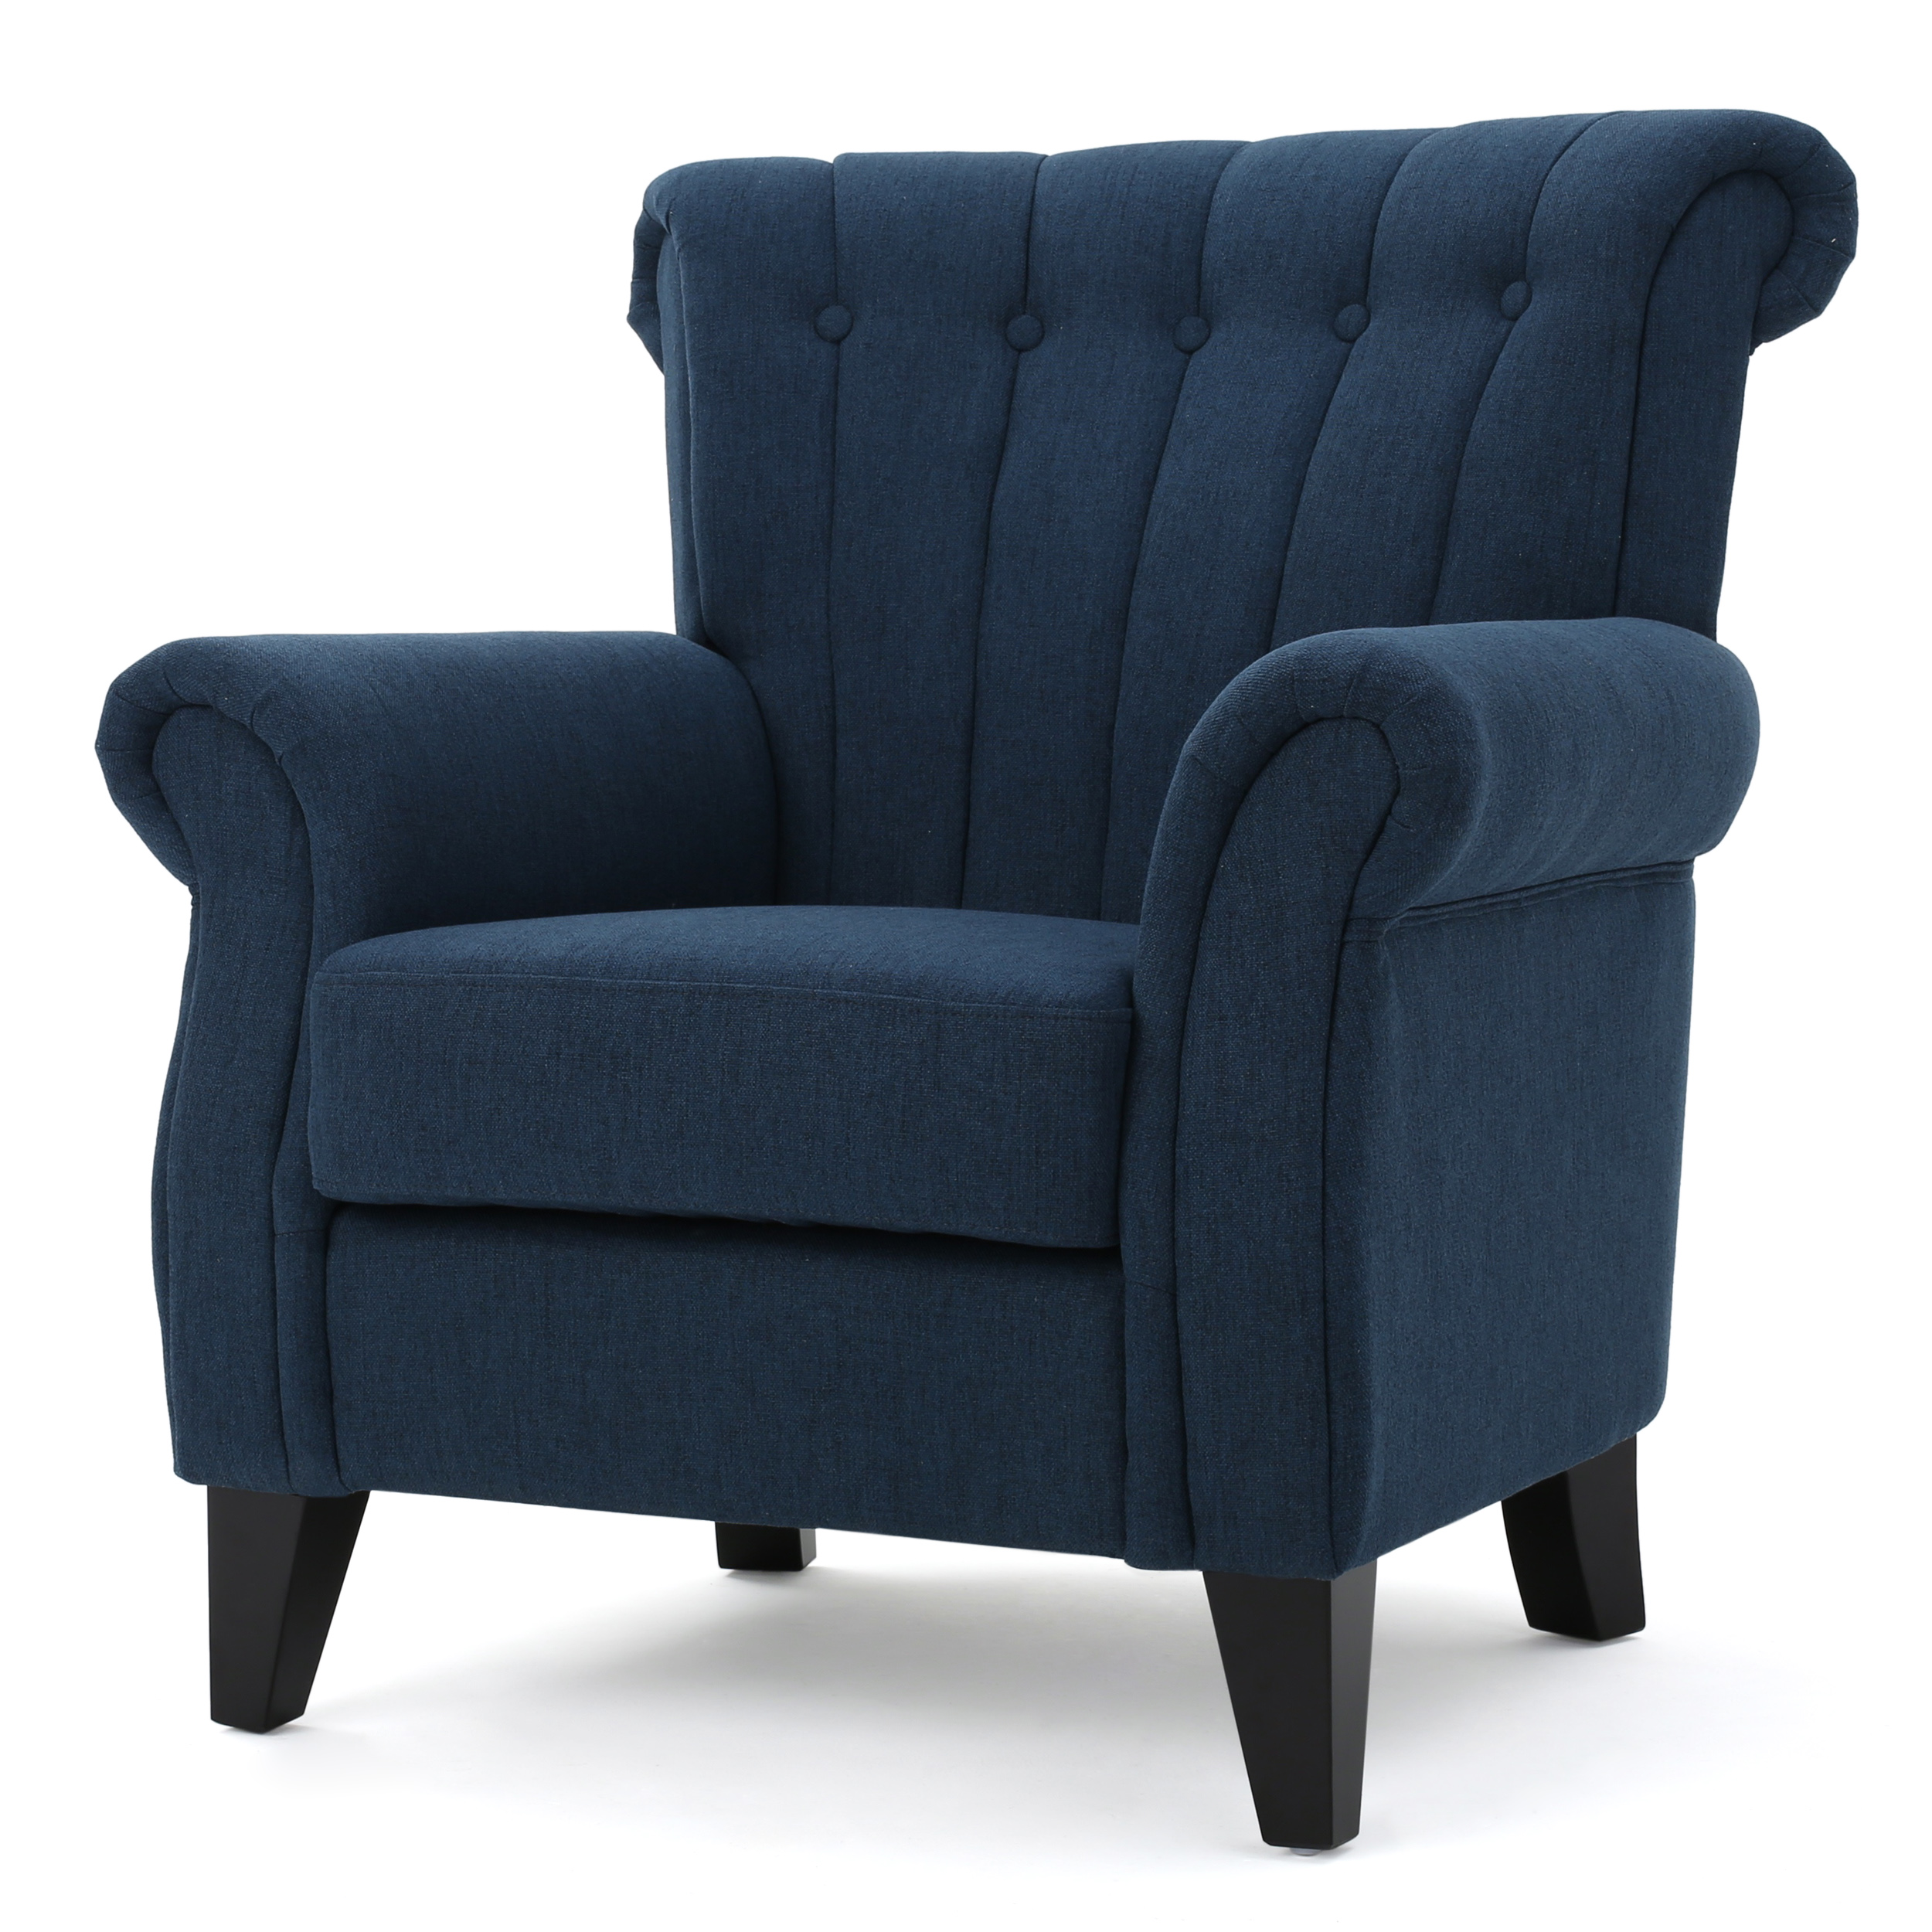 Romee Channel Fabric Club Chair, Dark Blue by GDF Studio